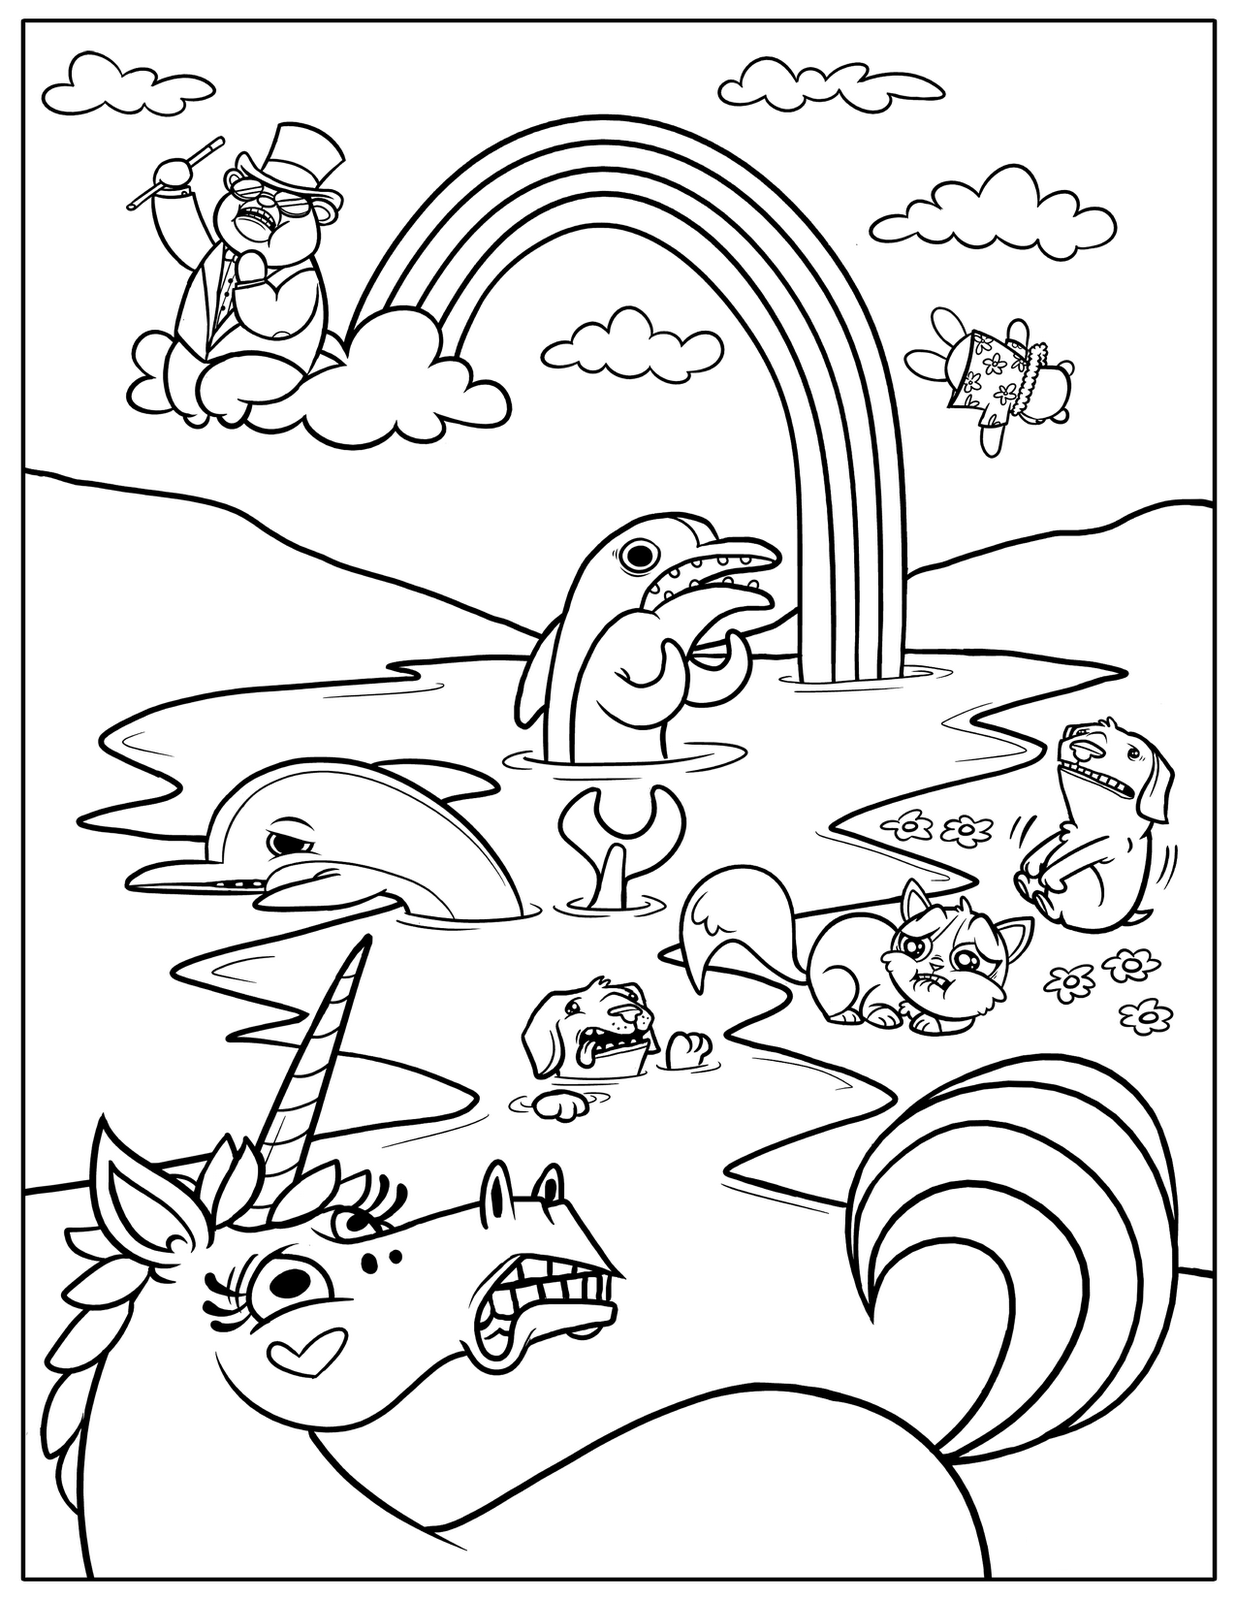 free printable rainbow coloring pages for kids - Printable Sheets For Kids